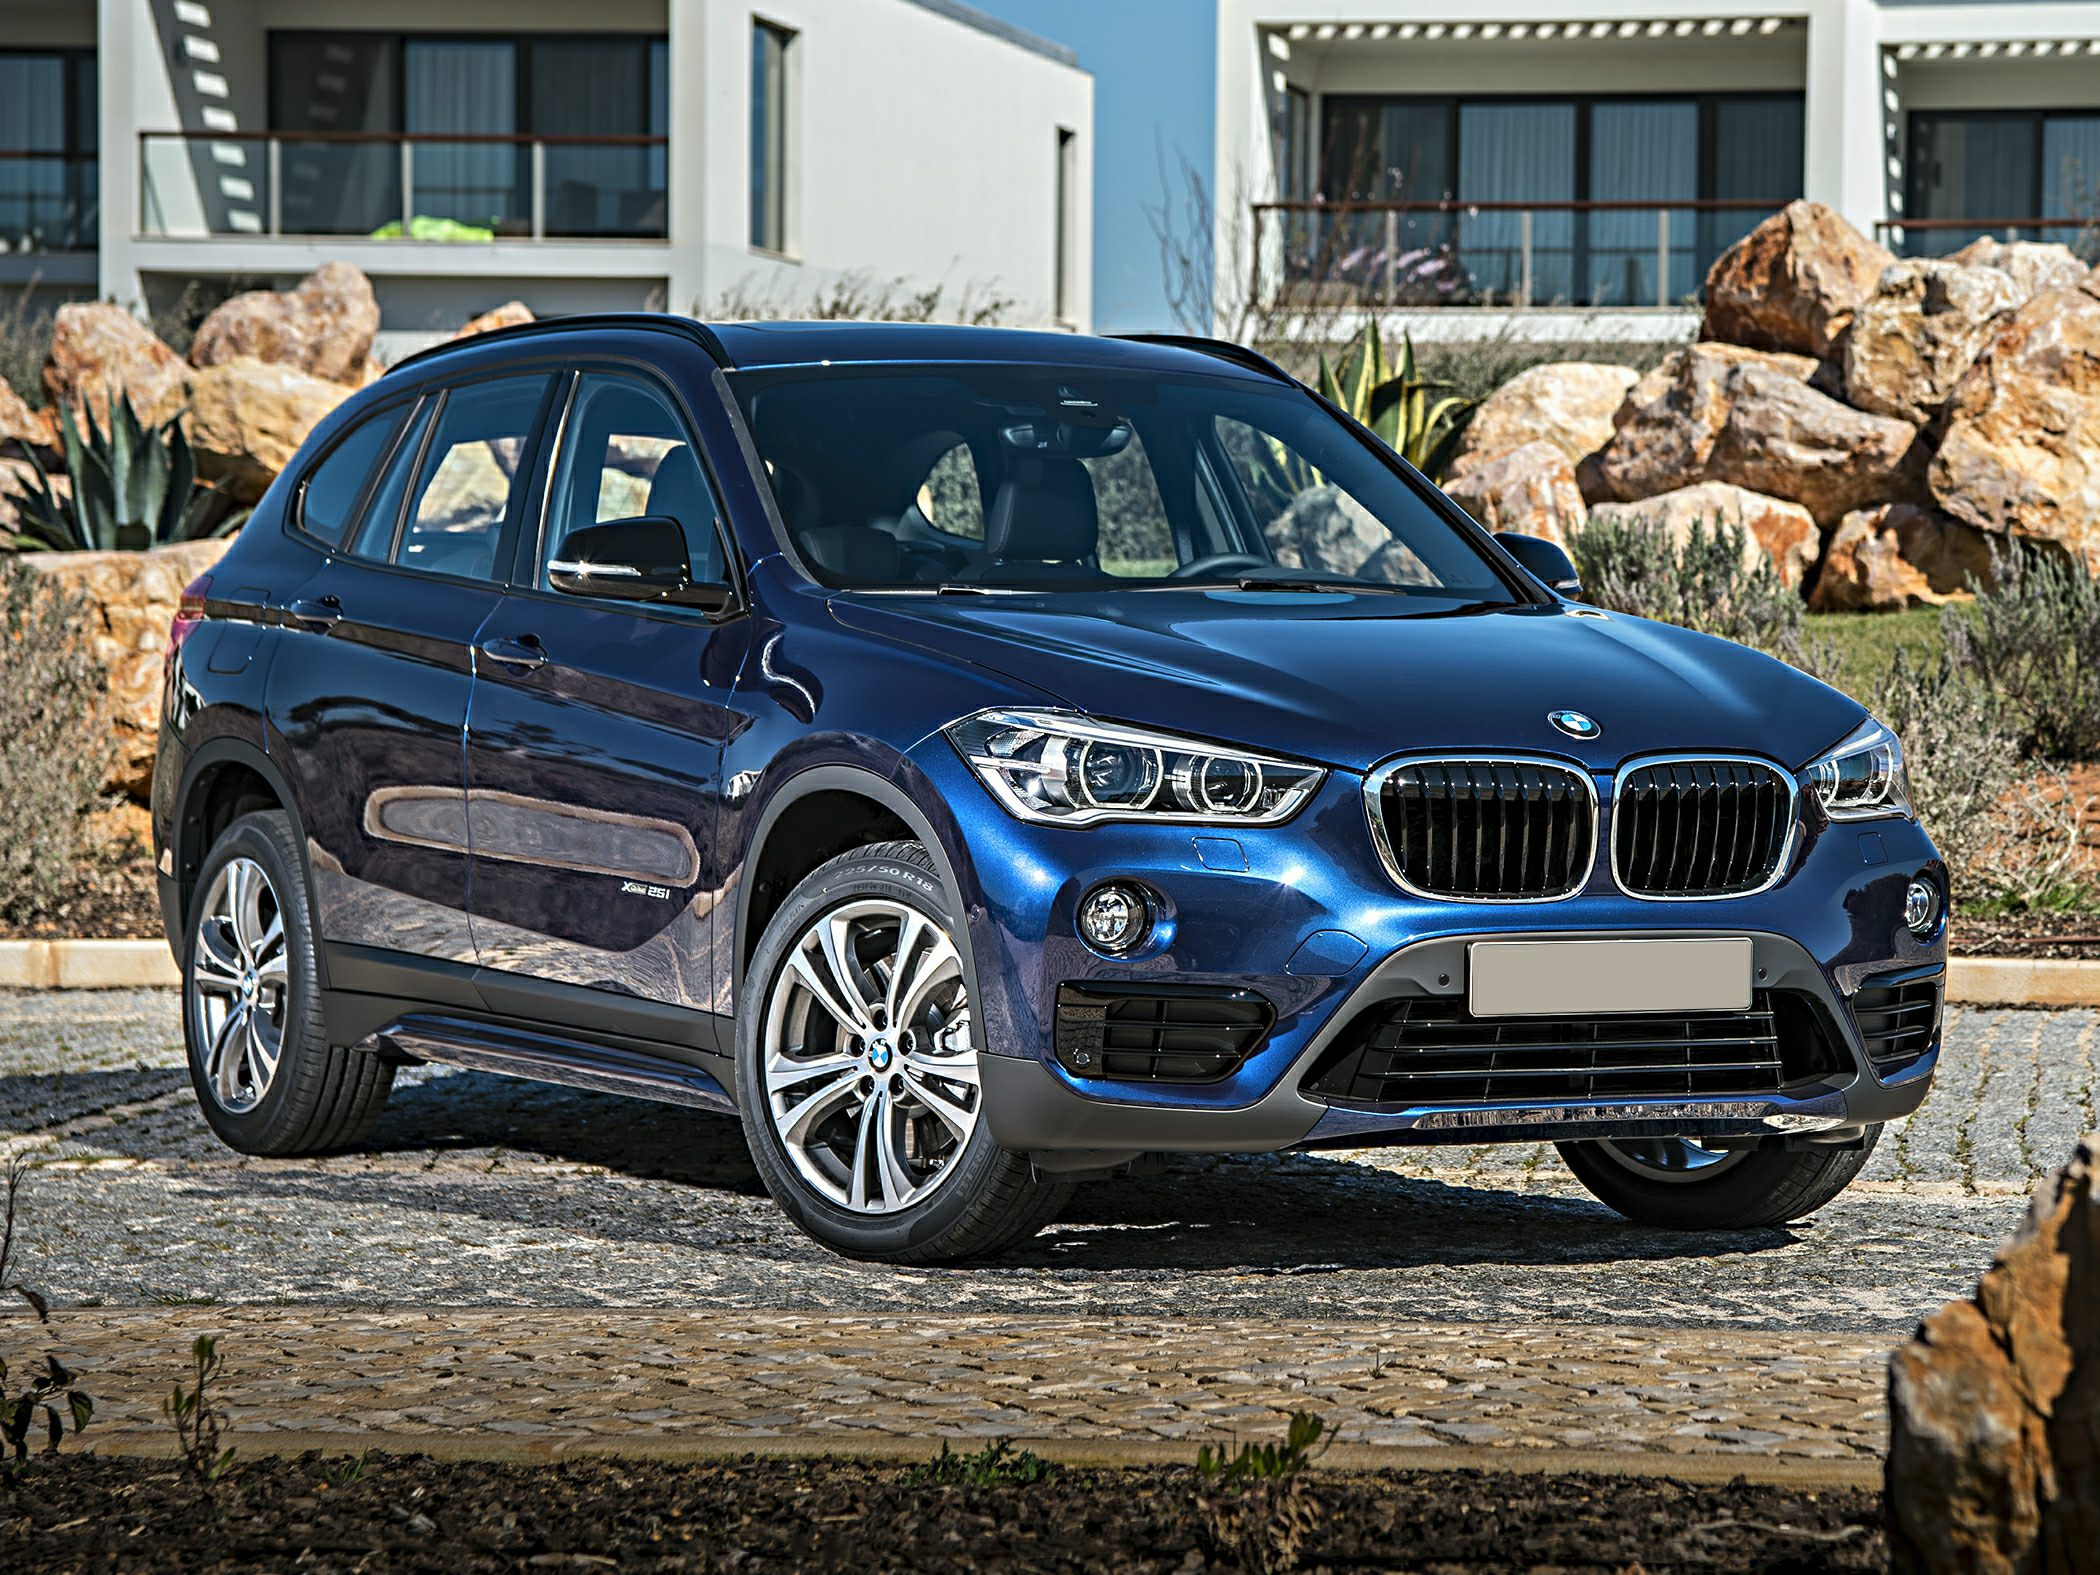 2018 bmw x1 deals, prices, incentives & leases, overview - carsdirect